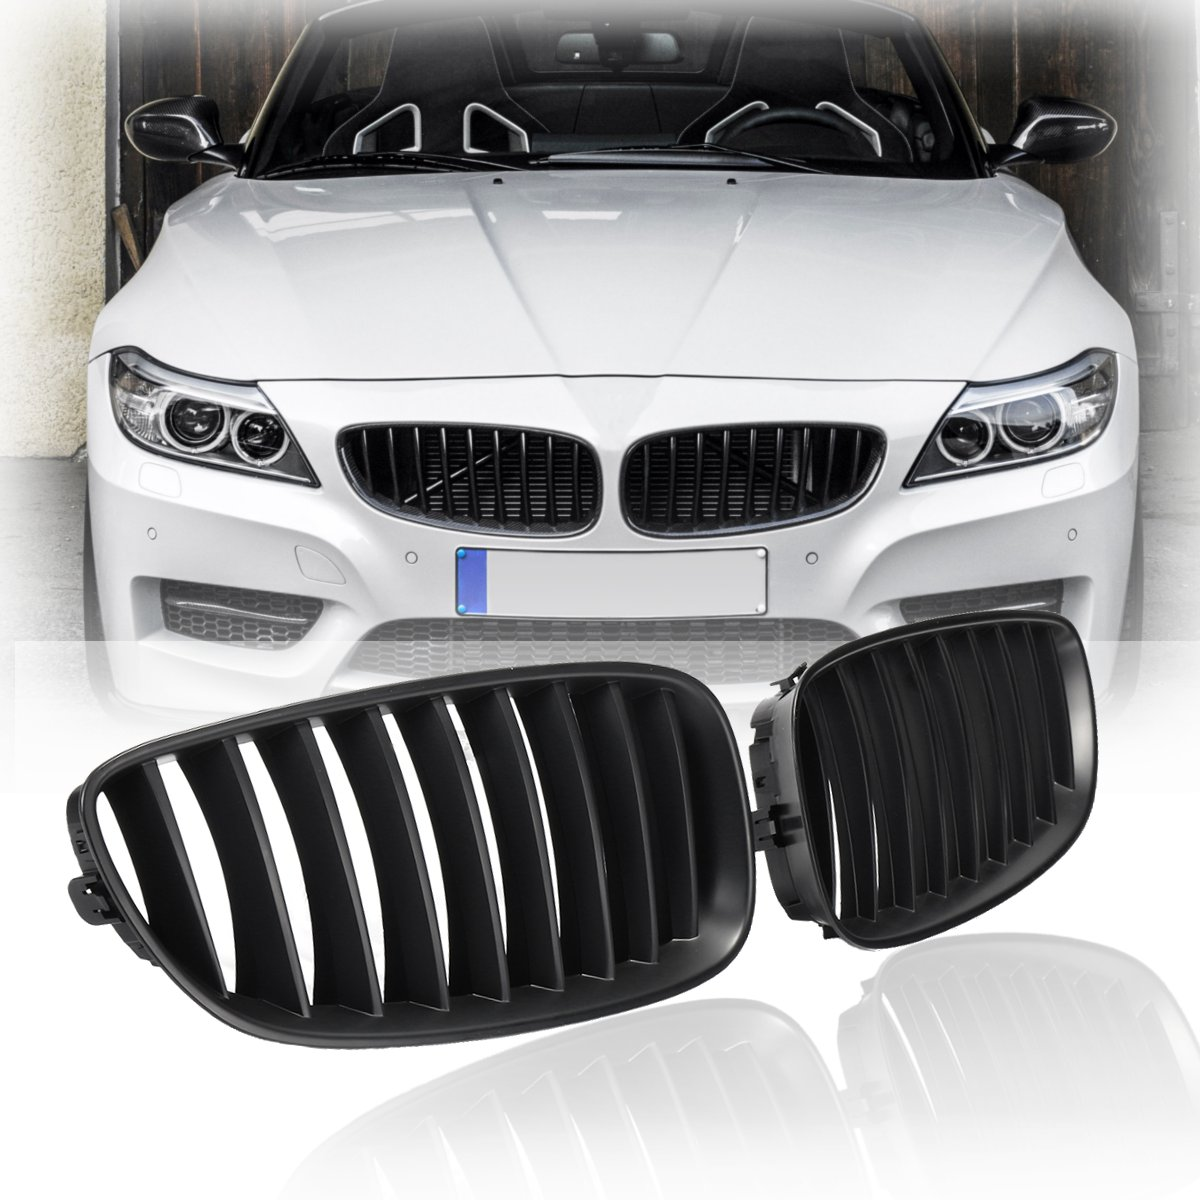 For BMW Z4 E89 2008 2009 2010 2011 2012 2013 2014 2015 2016 Pair New Matte Black Front Kidney Grill Grille ReplacementFor BMW Z4 E89 2008 2009 2010 2011 2012 2013 2014 2015 2016 Pair New Matte Black Front Kidney Grill Grille Replacement